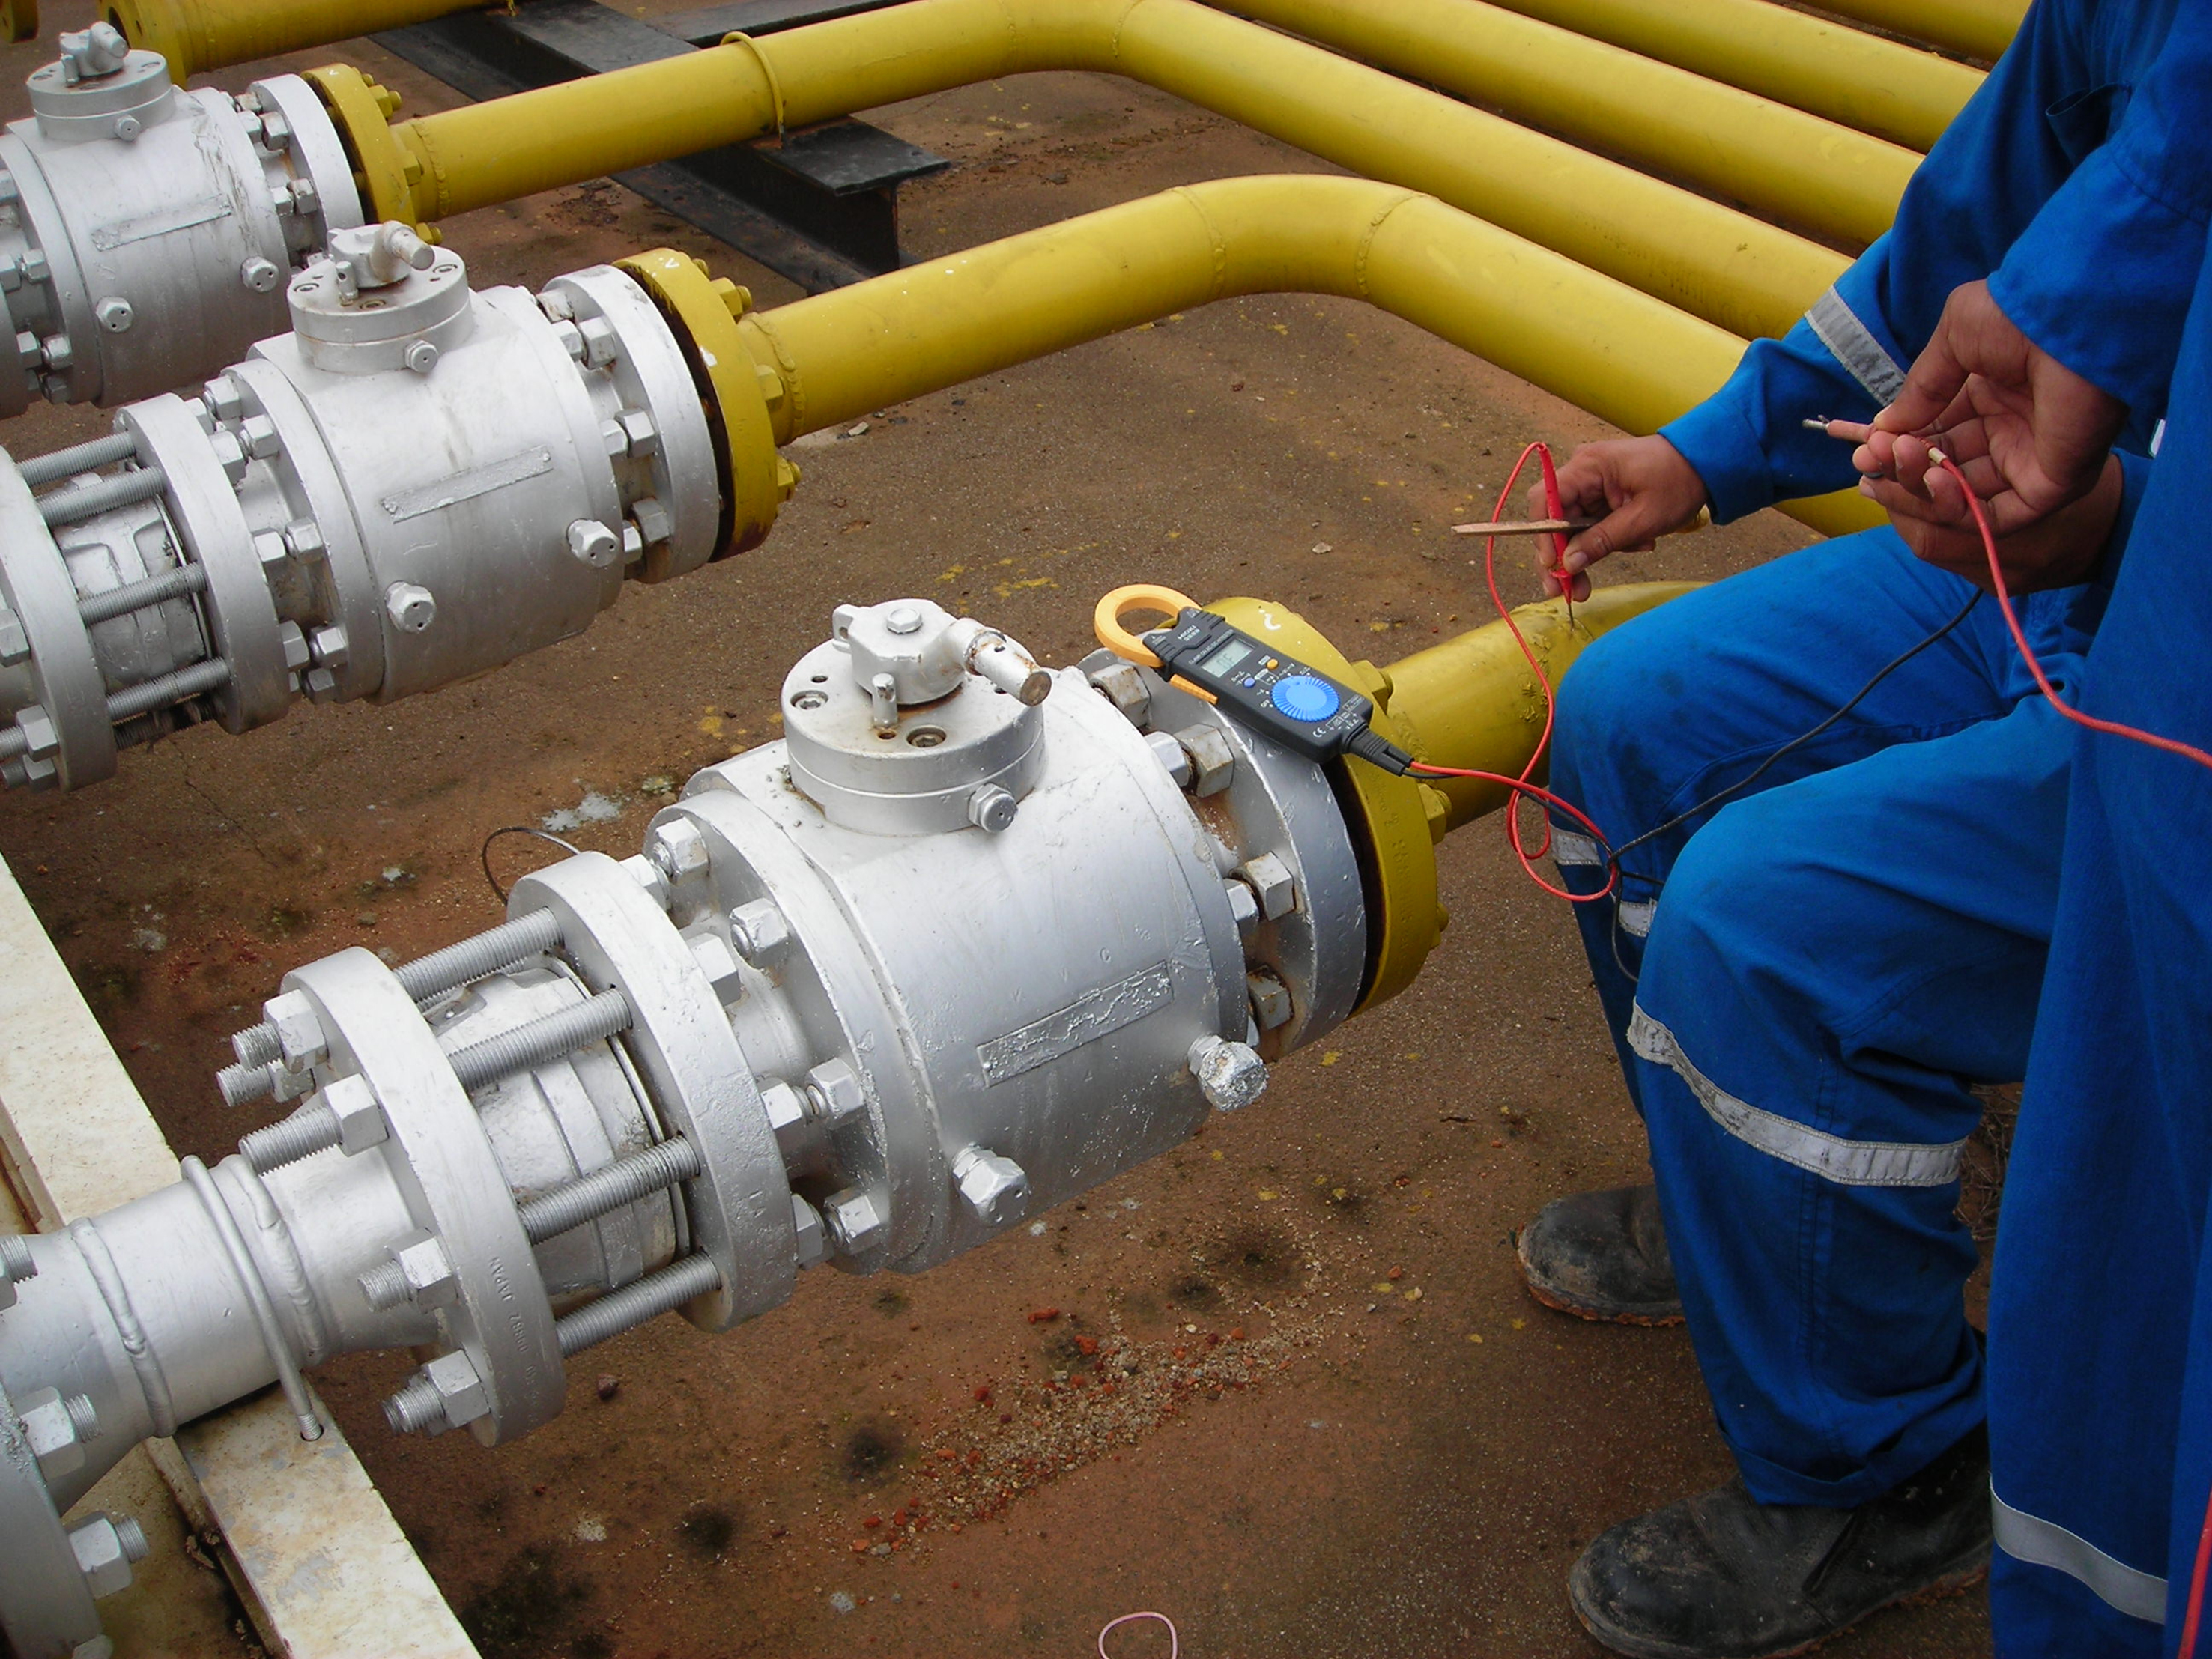 Testing Natural Gas Line For Leaks In Distribution Facility